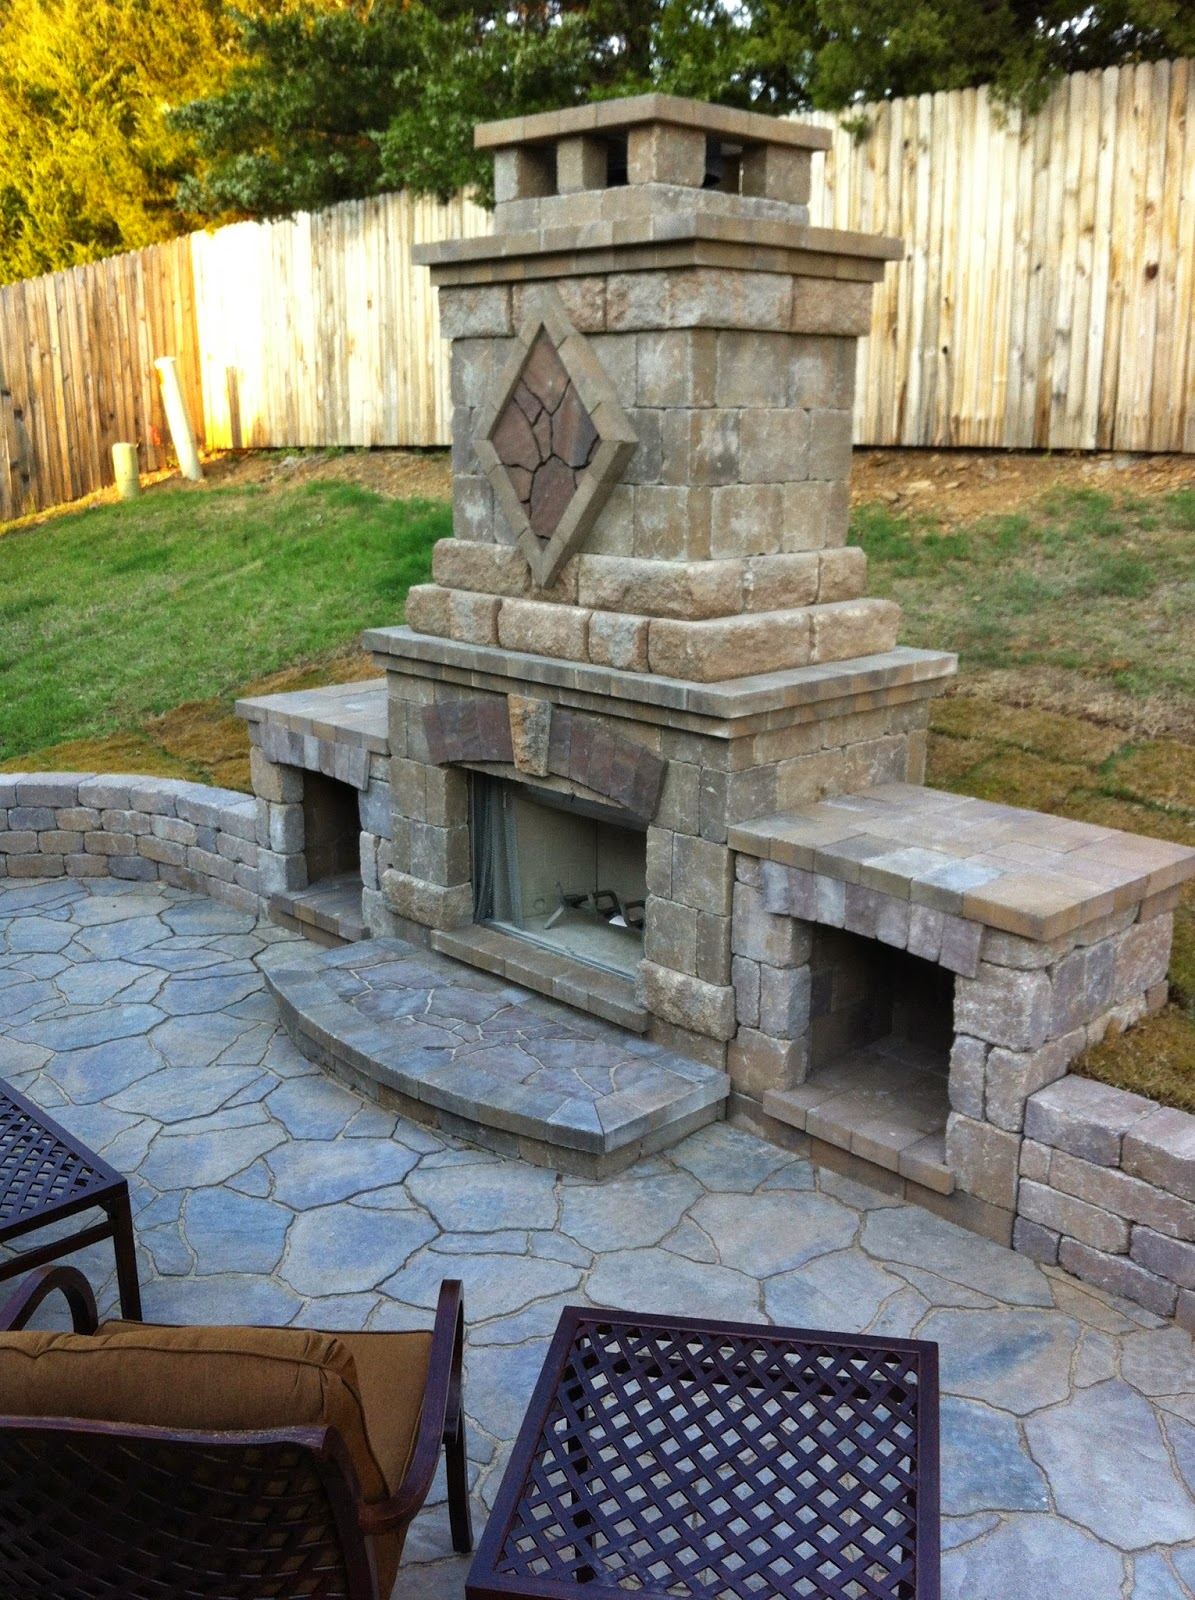 Remodelaholic | How to Install a Shiplap Wall + Rustic ... on Amazing Outdoor Fireplaces id=80411